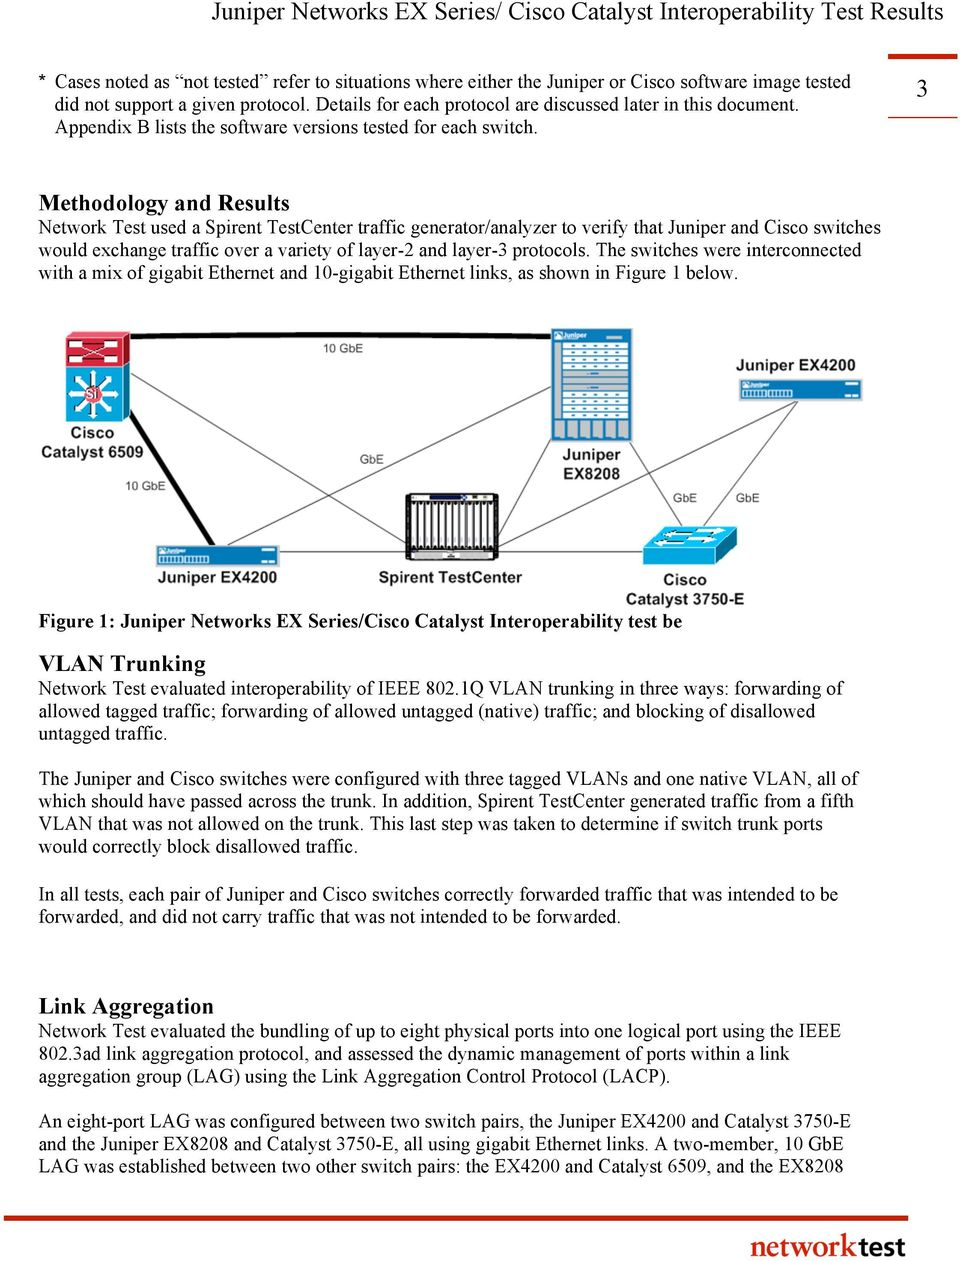 Juniper Networks Ex Series Cisco Catalyst Interoperability Test Switch Diagram 3 Methodology And Results Network Used A Spirent Testcenter Traffic Generator Analyzer To Verify